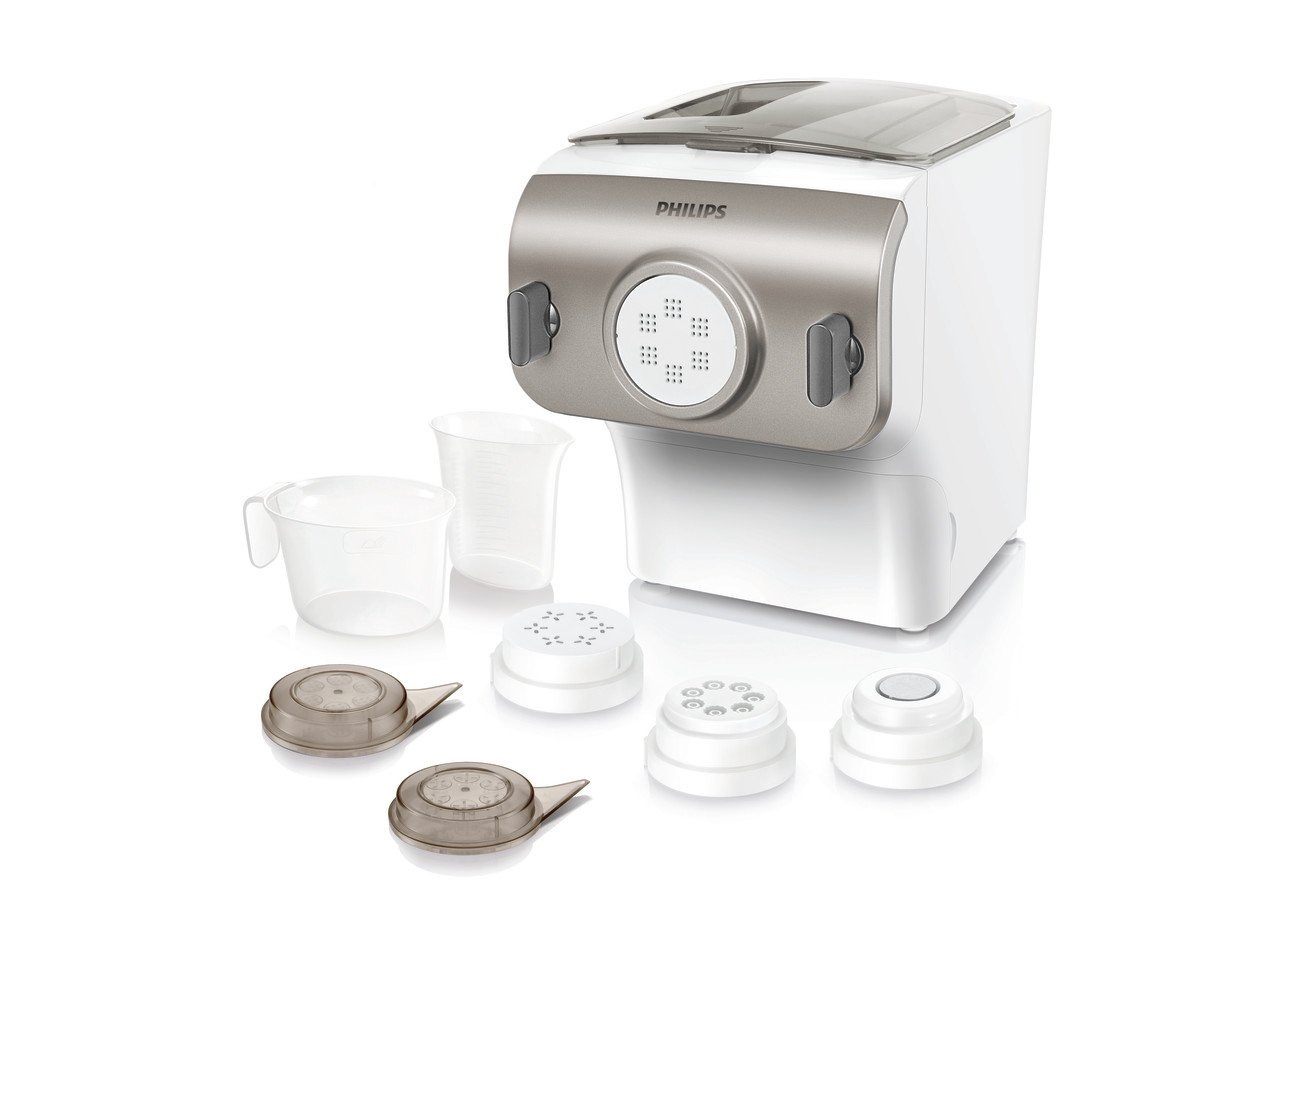 Philips Pasta and Noodle Maker with 4 Interchangeable Pasta Shape Plates- HR2357/08 by Philips Kitchen